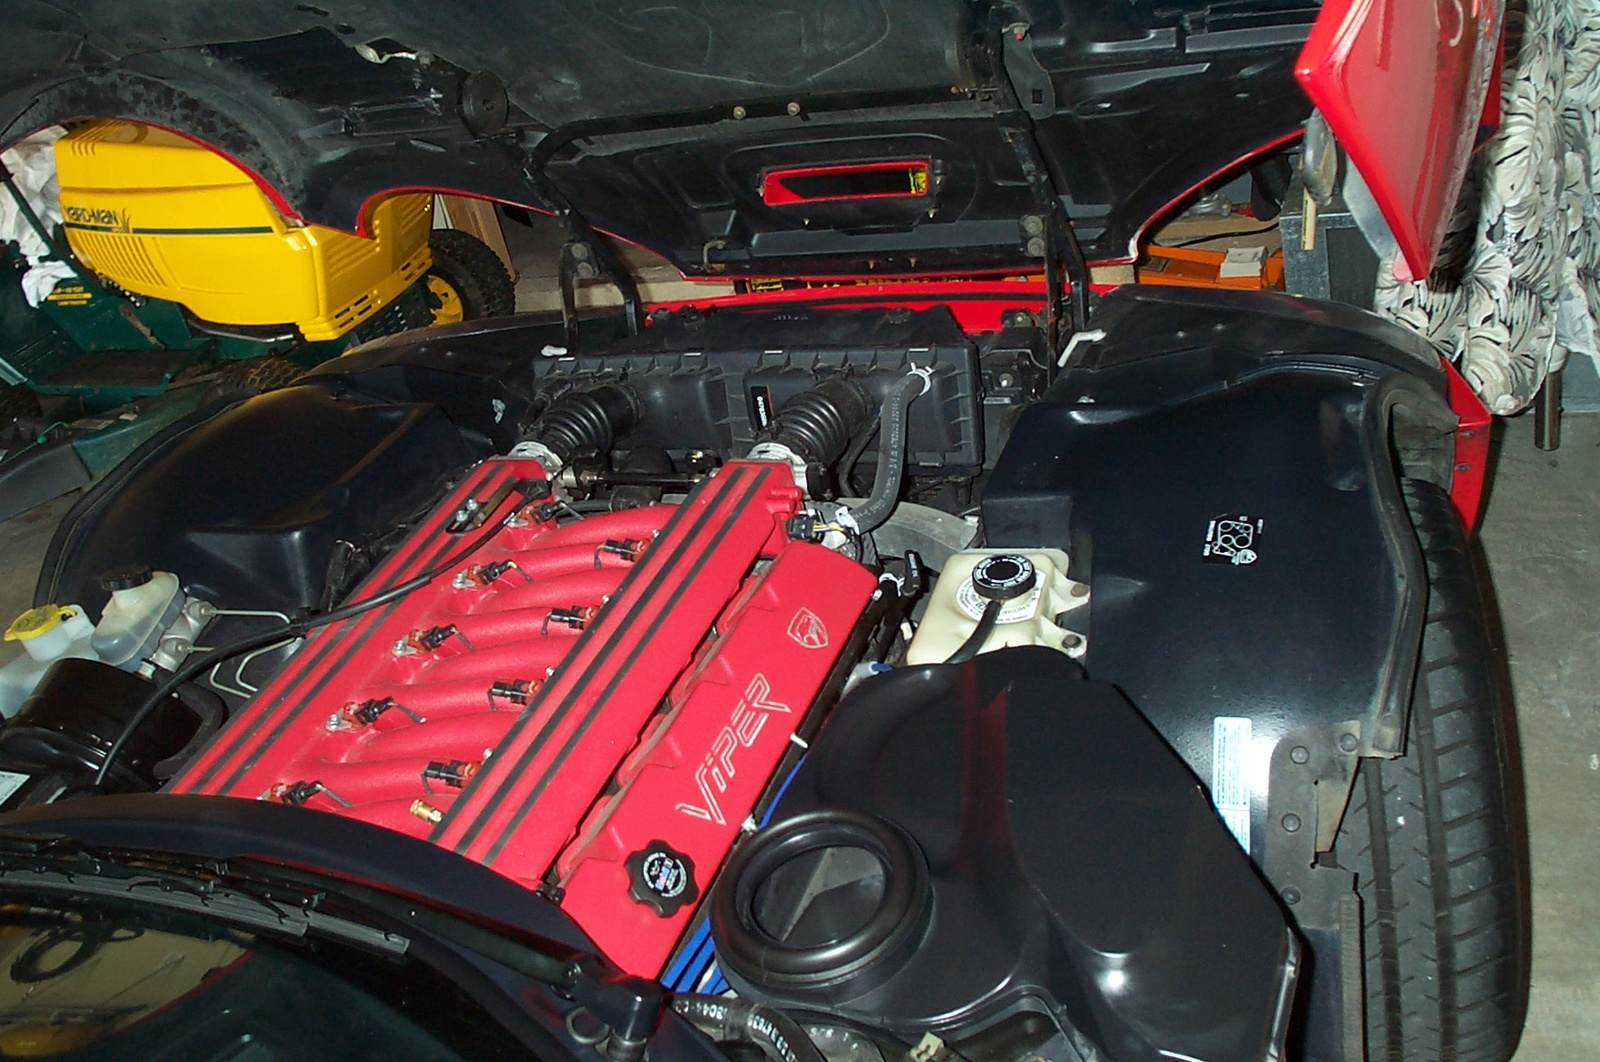 1997 Dodge Viper 2 Dr GTS Coupe picture, engine